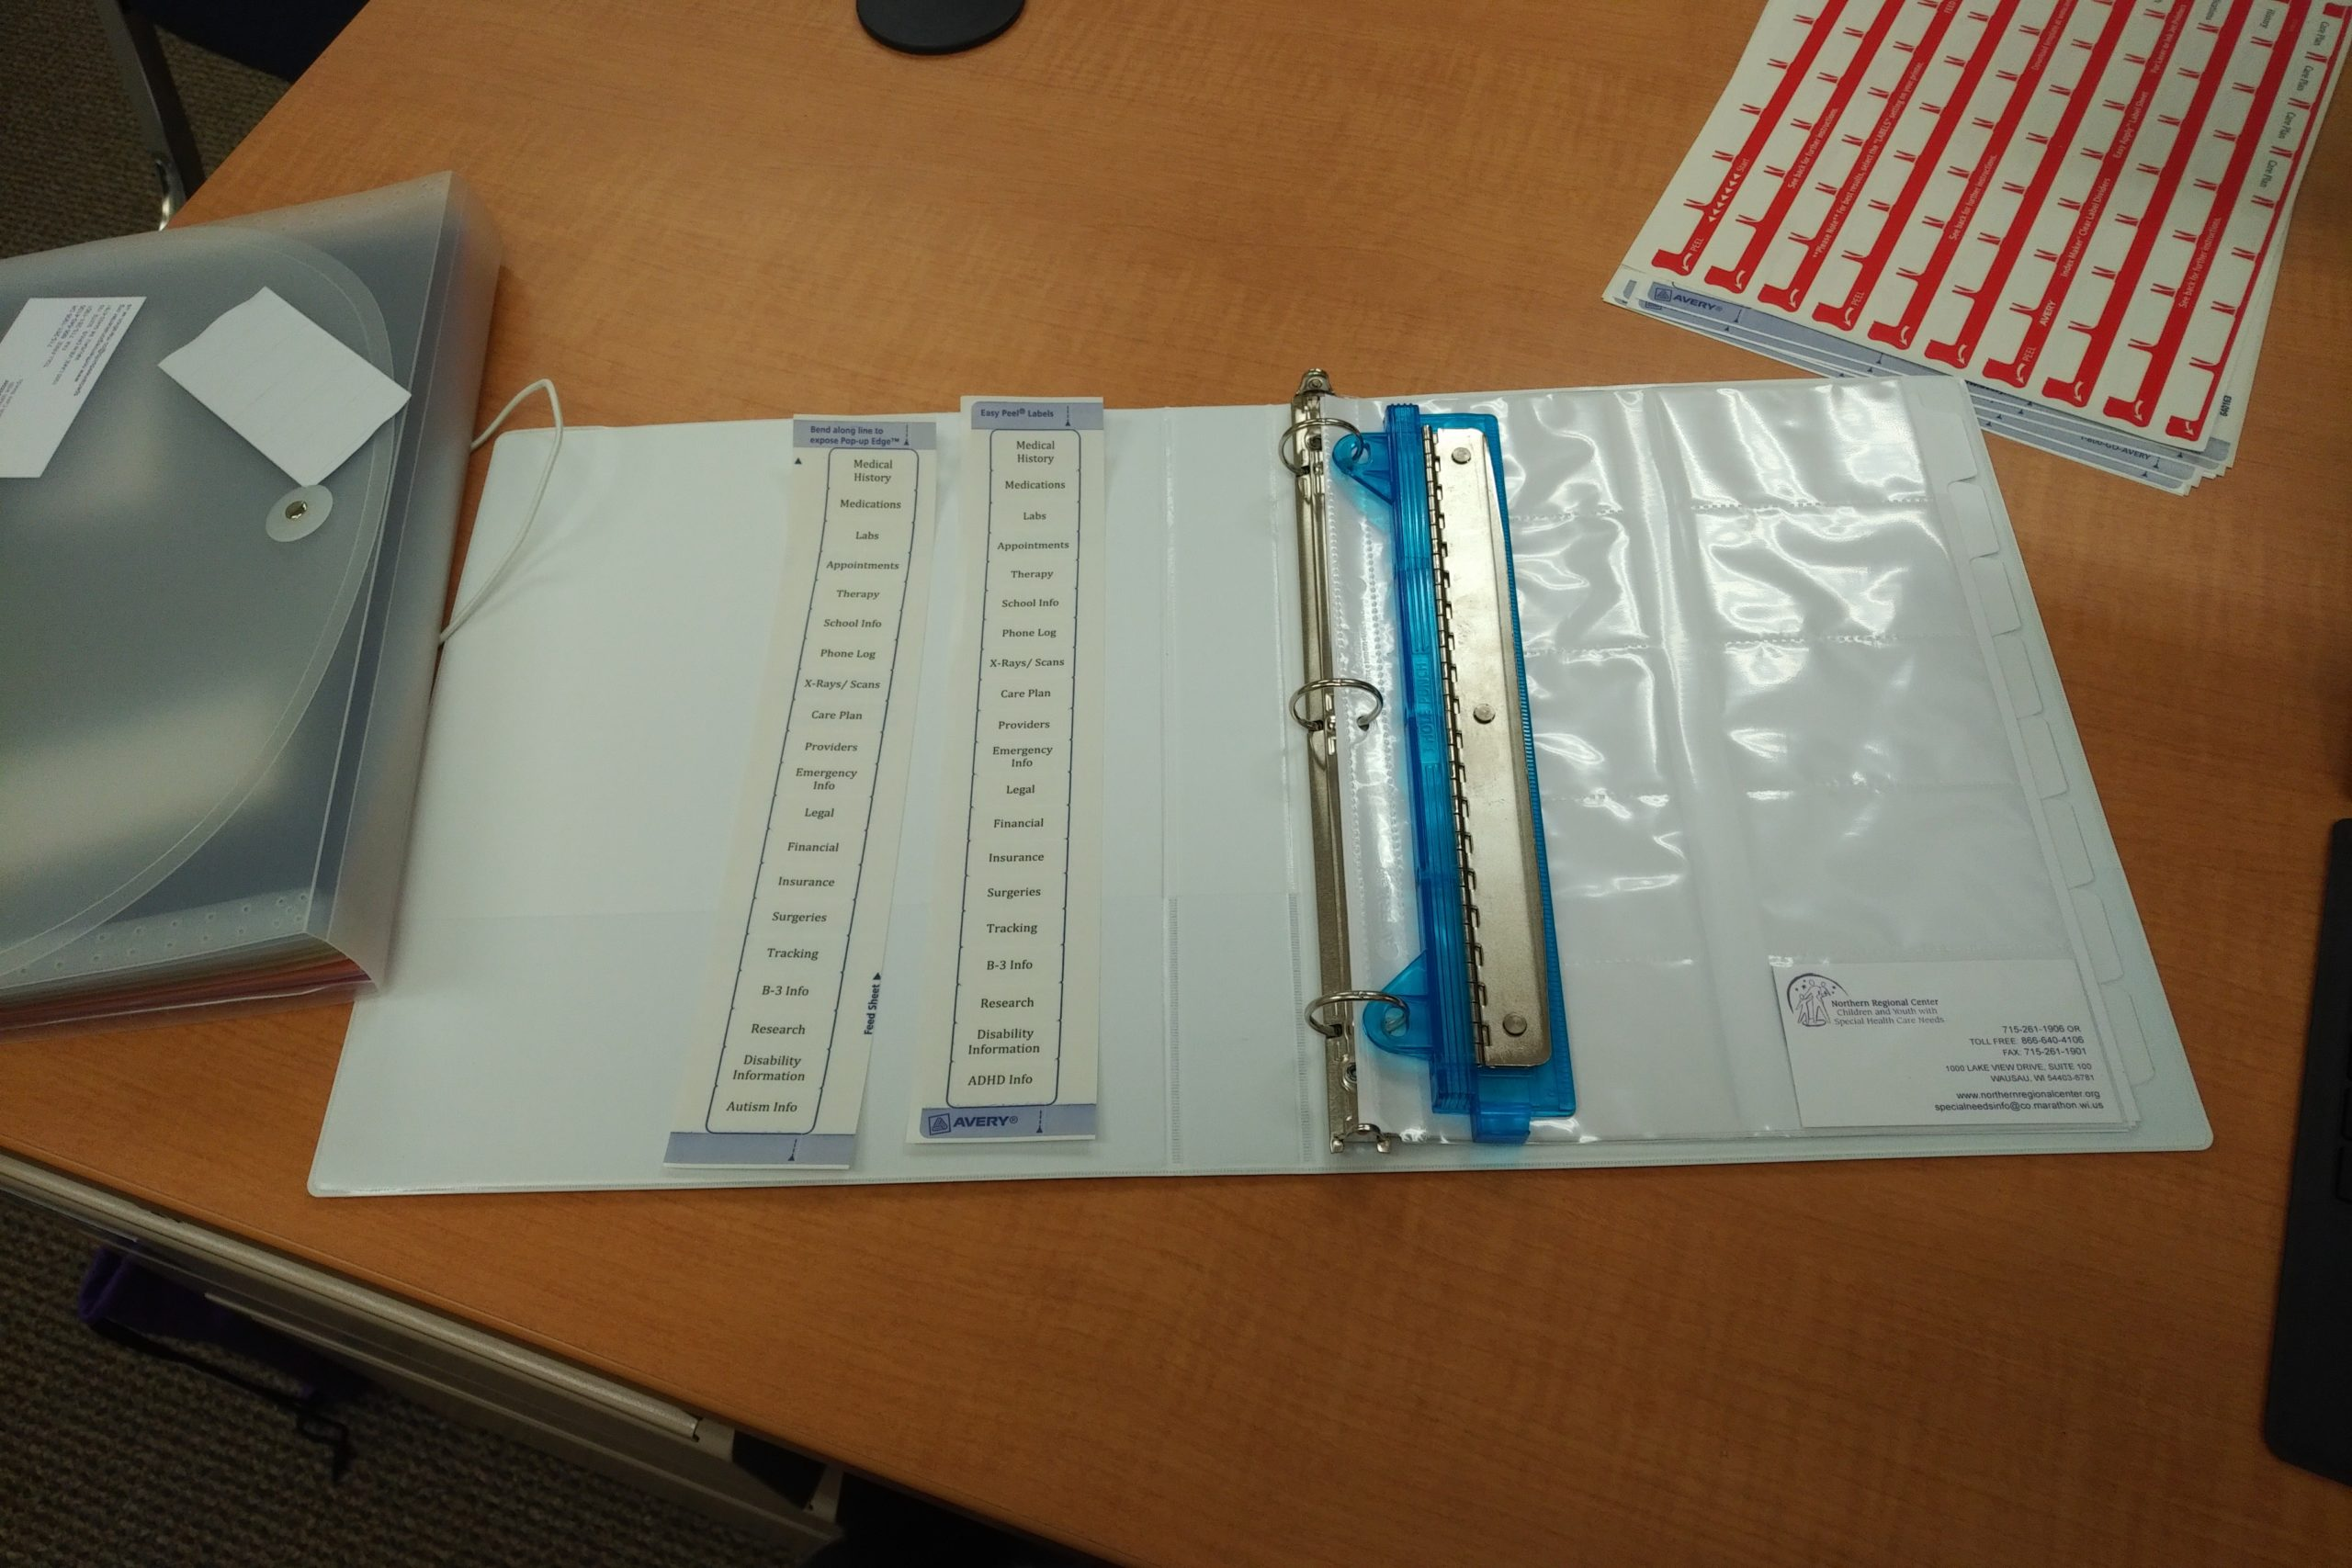 Picture of notebook with labels and hole punch